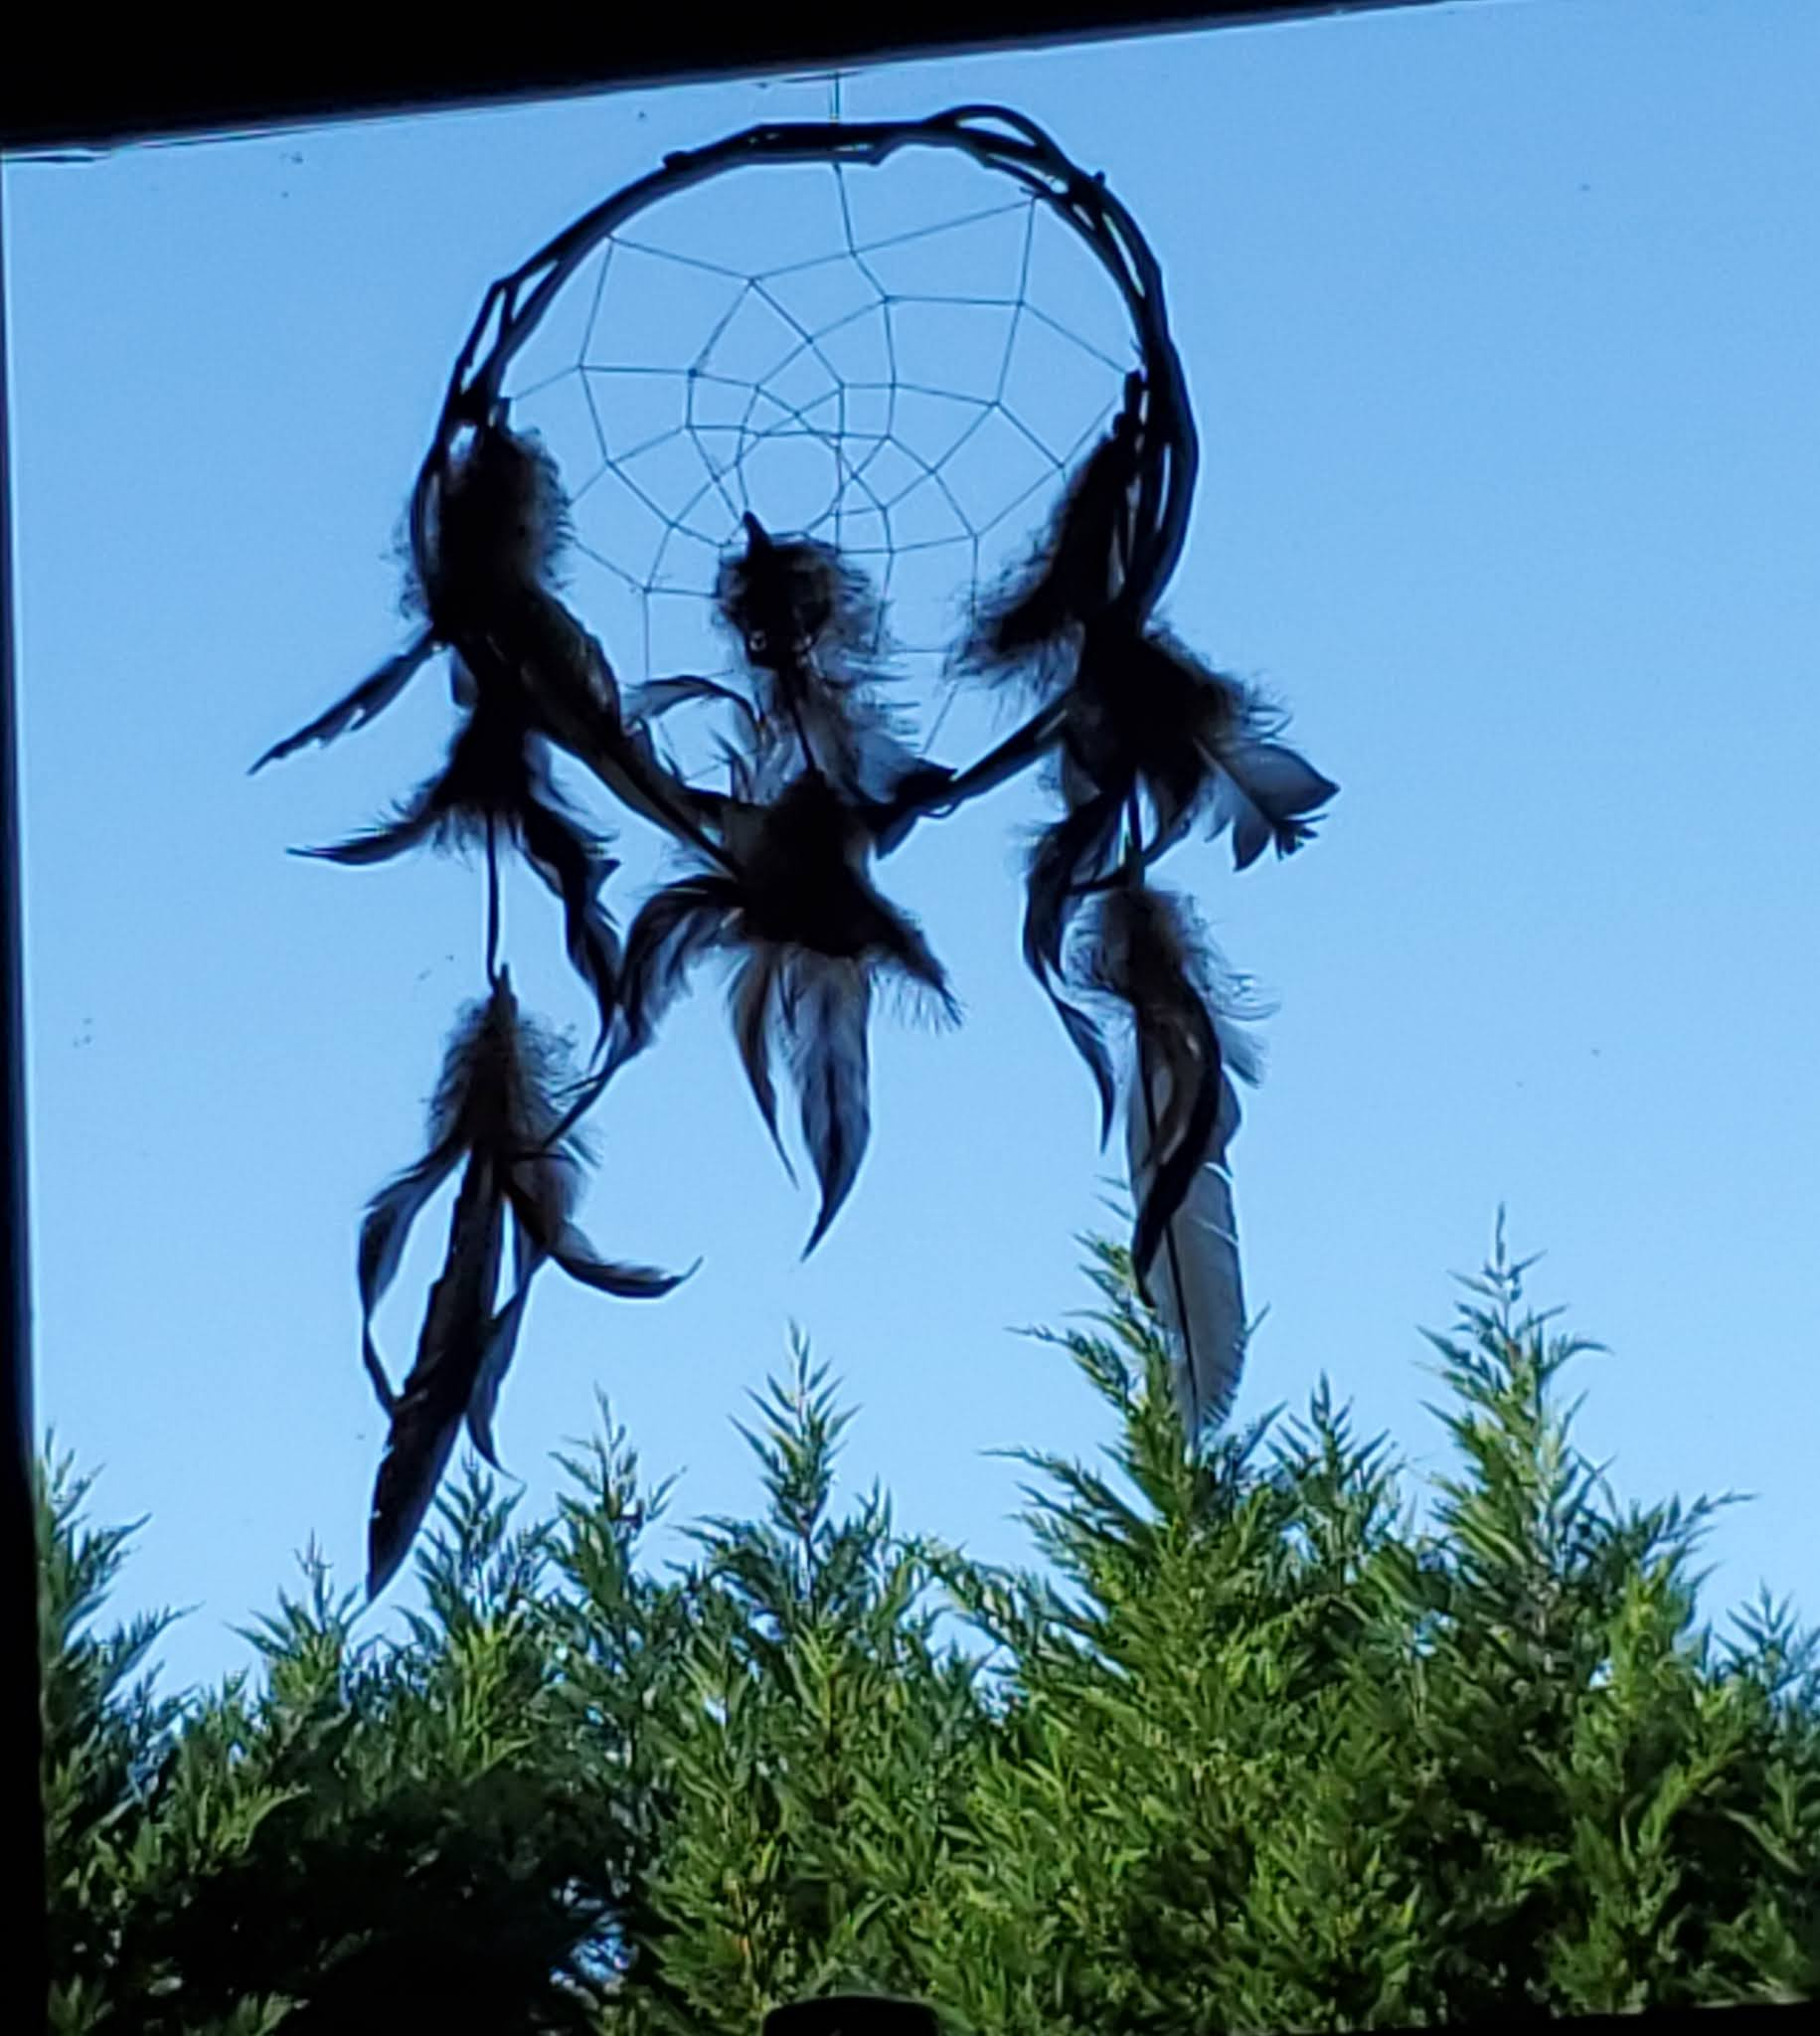 This is a picture of a dream catcher with feathers hanging in a window with a blue sky in the background.